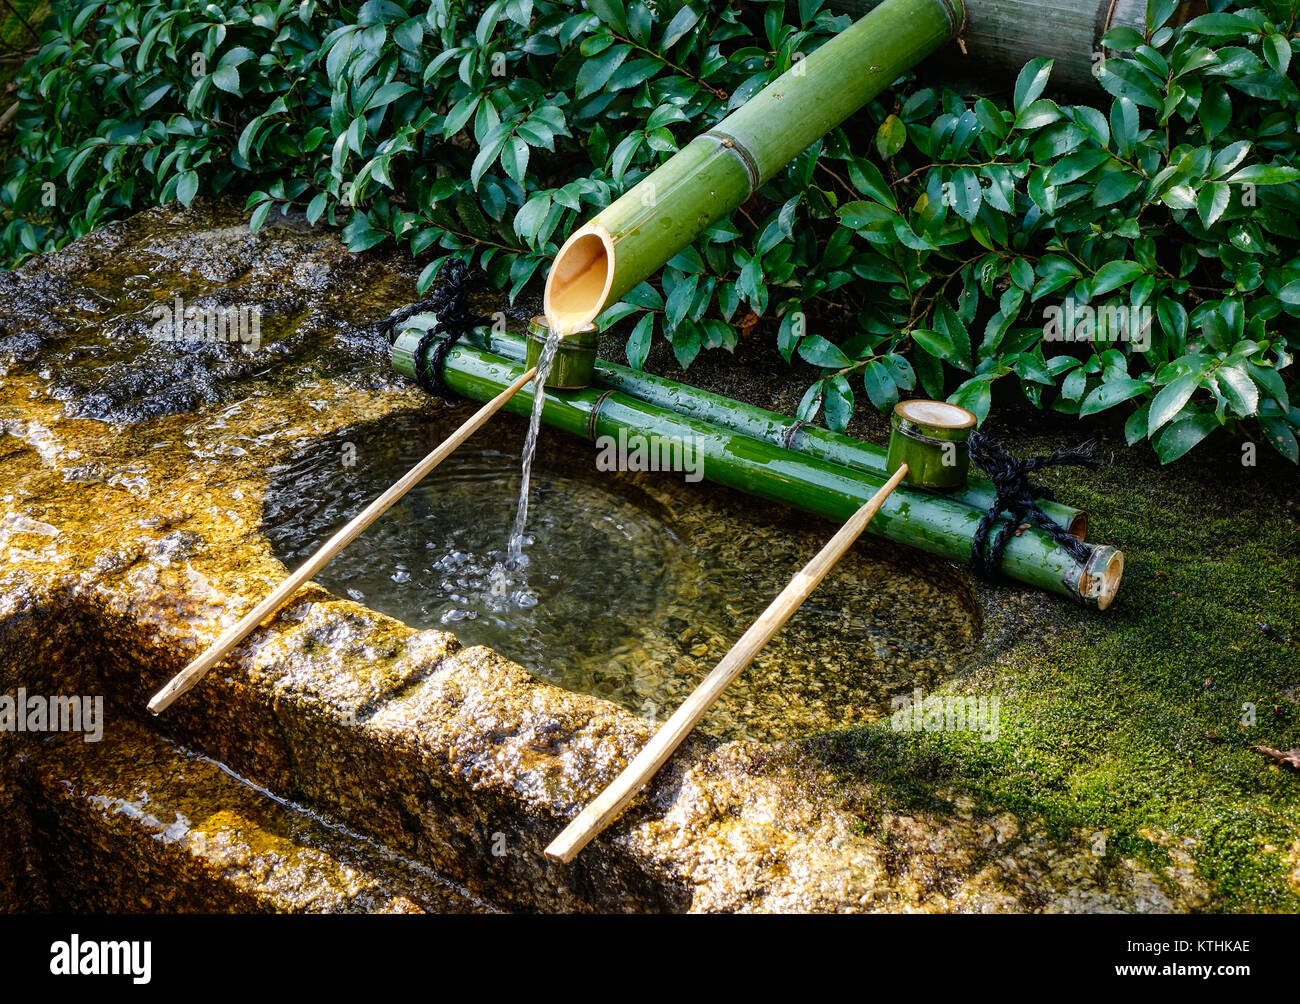 Water Basin At Japanese Zen Garden For Relaxation Balance And Harmony  Spirituality Or Wellness.